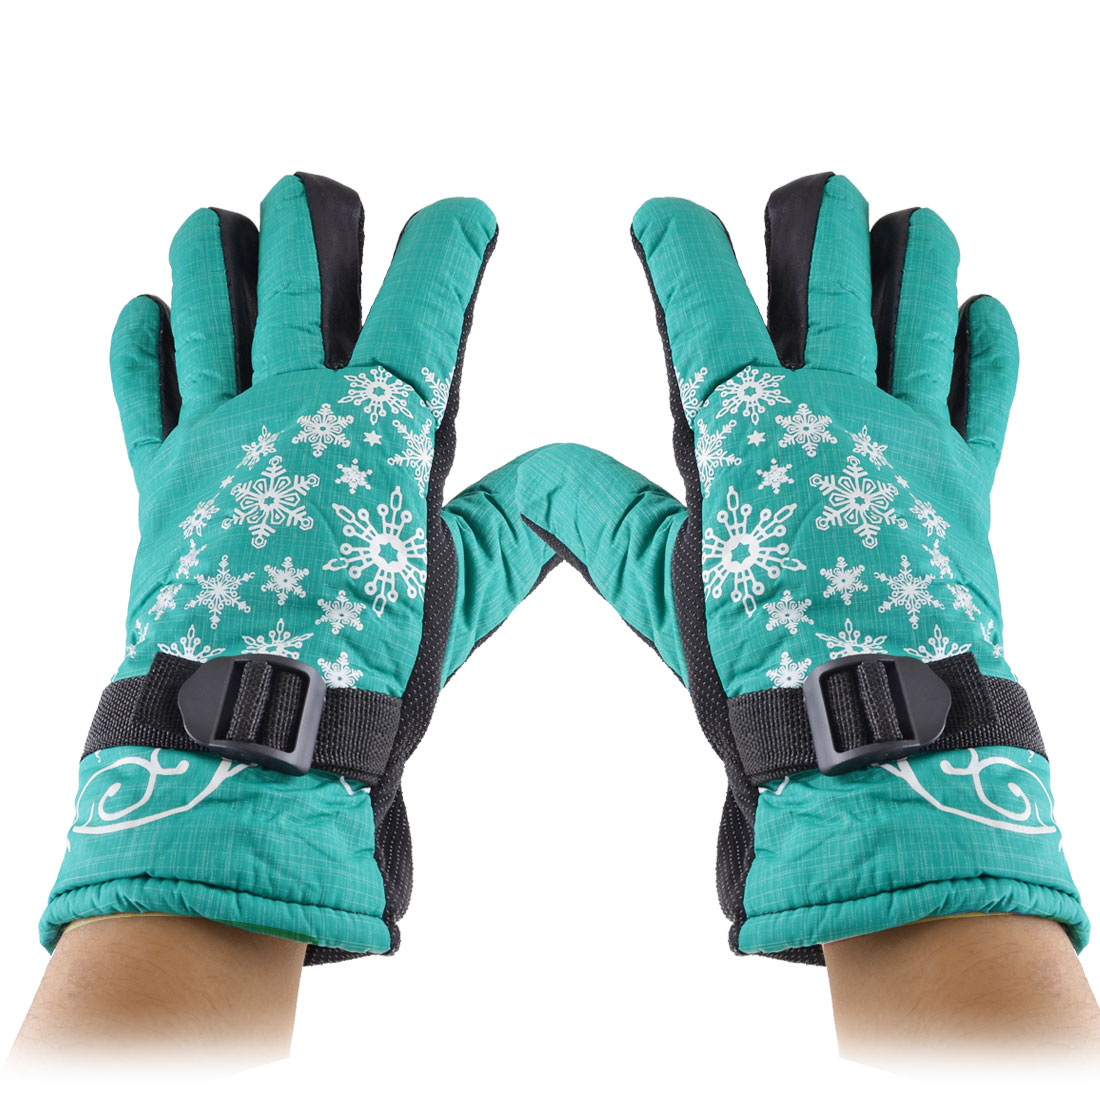 Woman Sponge Lining Snowflake Printed Winter Warm Gloves White Turquoise Green Pair